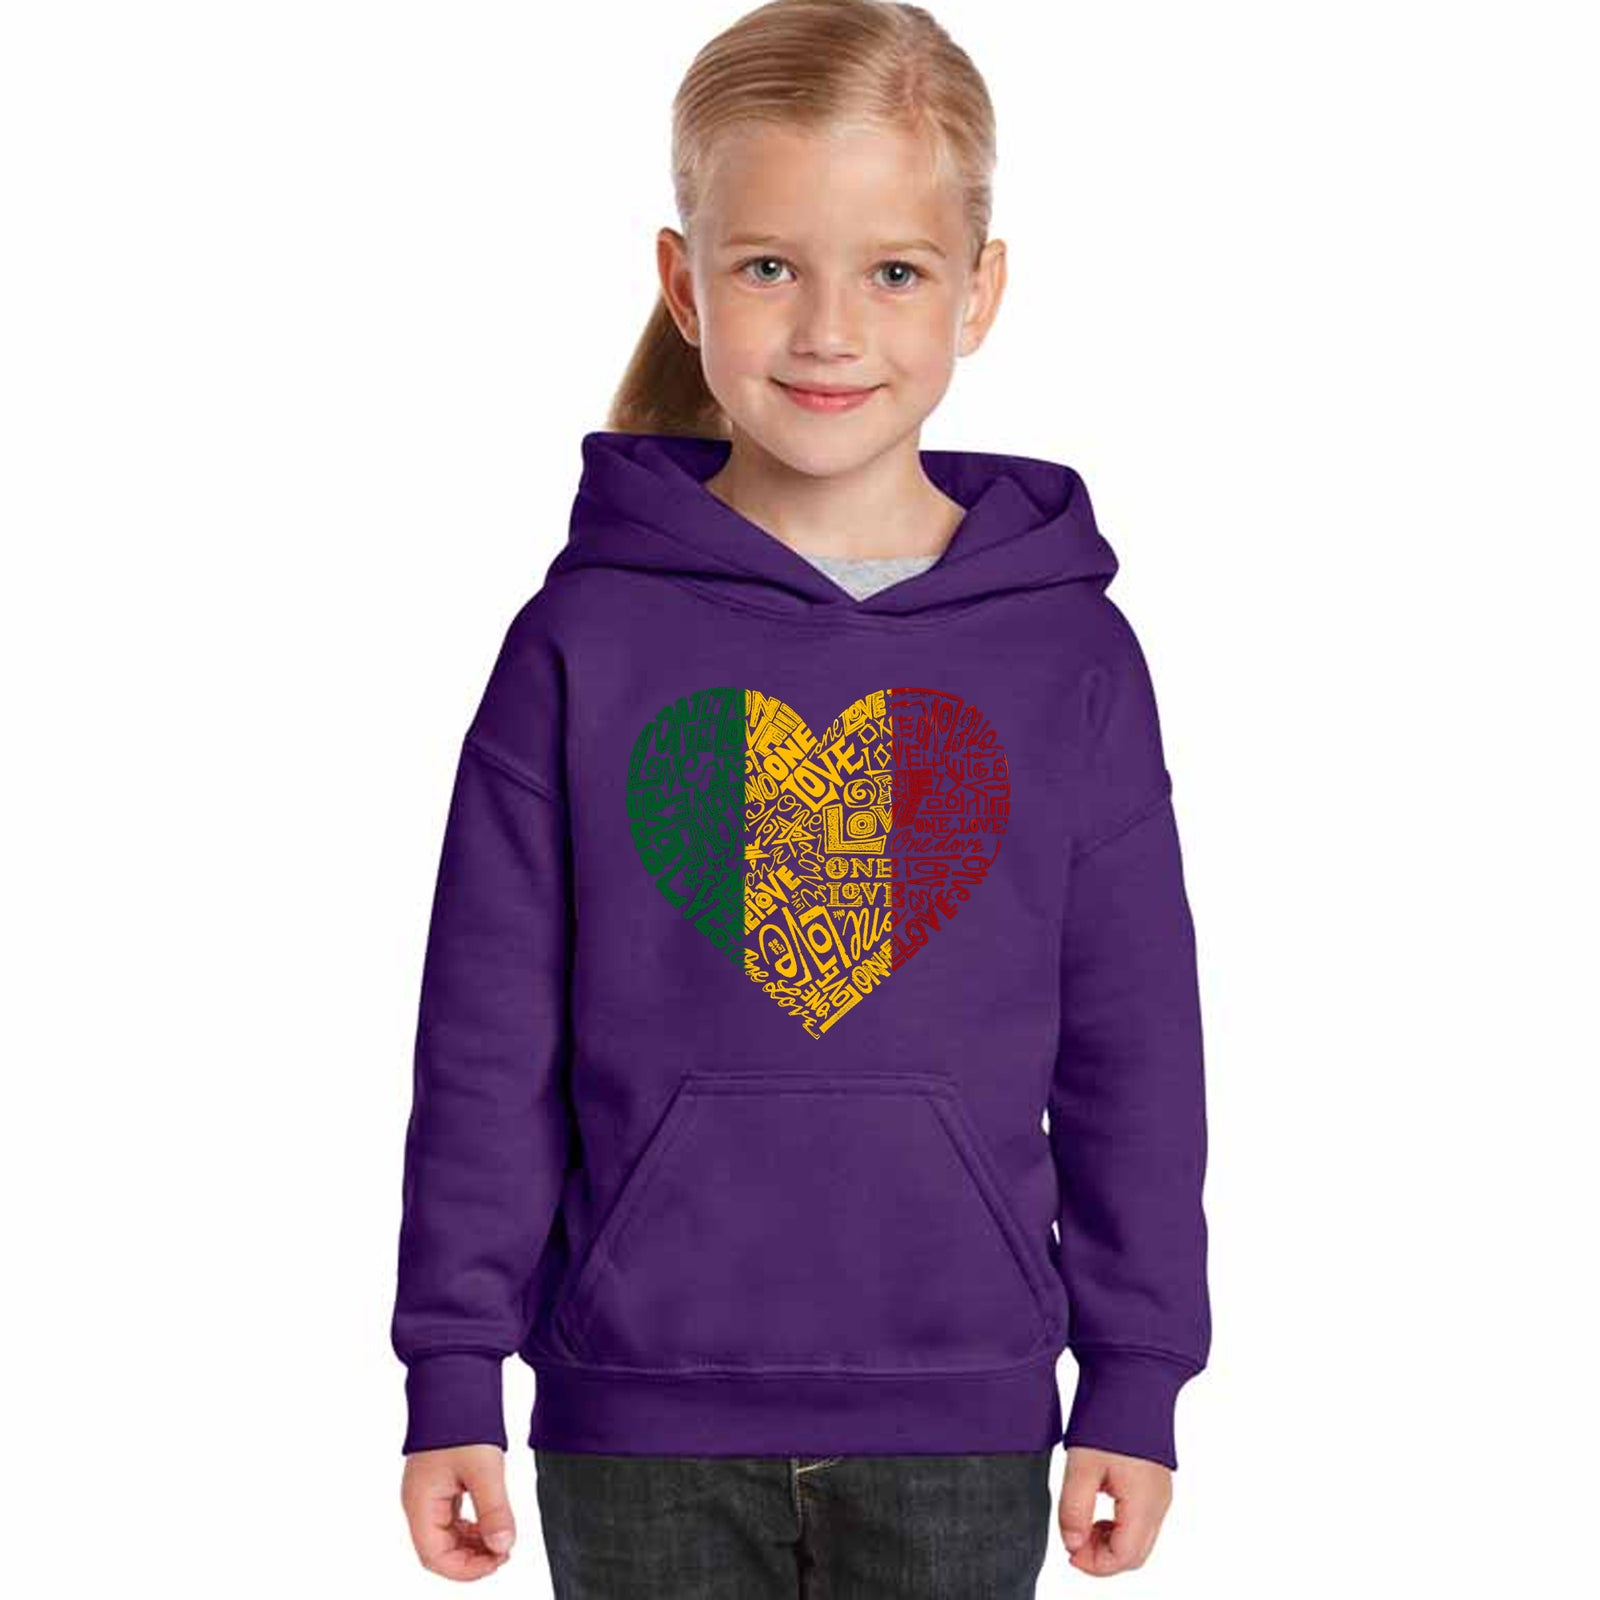 Girl's Hooded Sweatshirt - One Love Heart